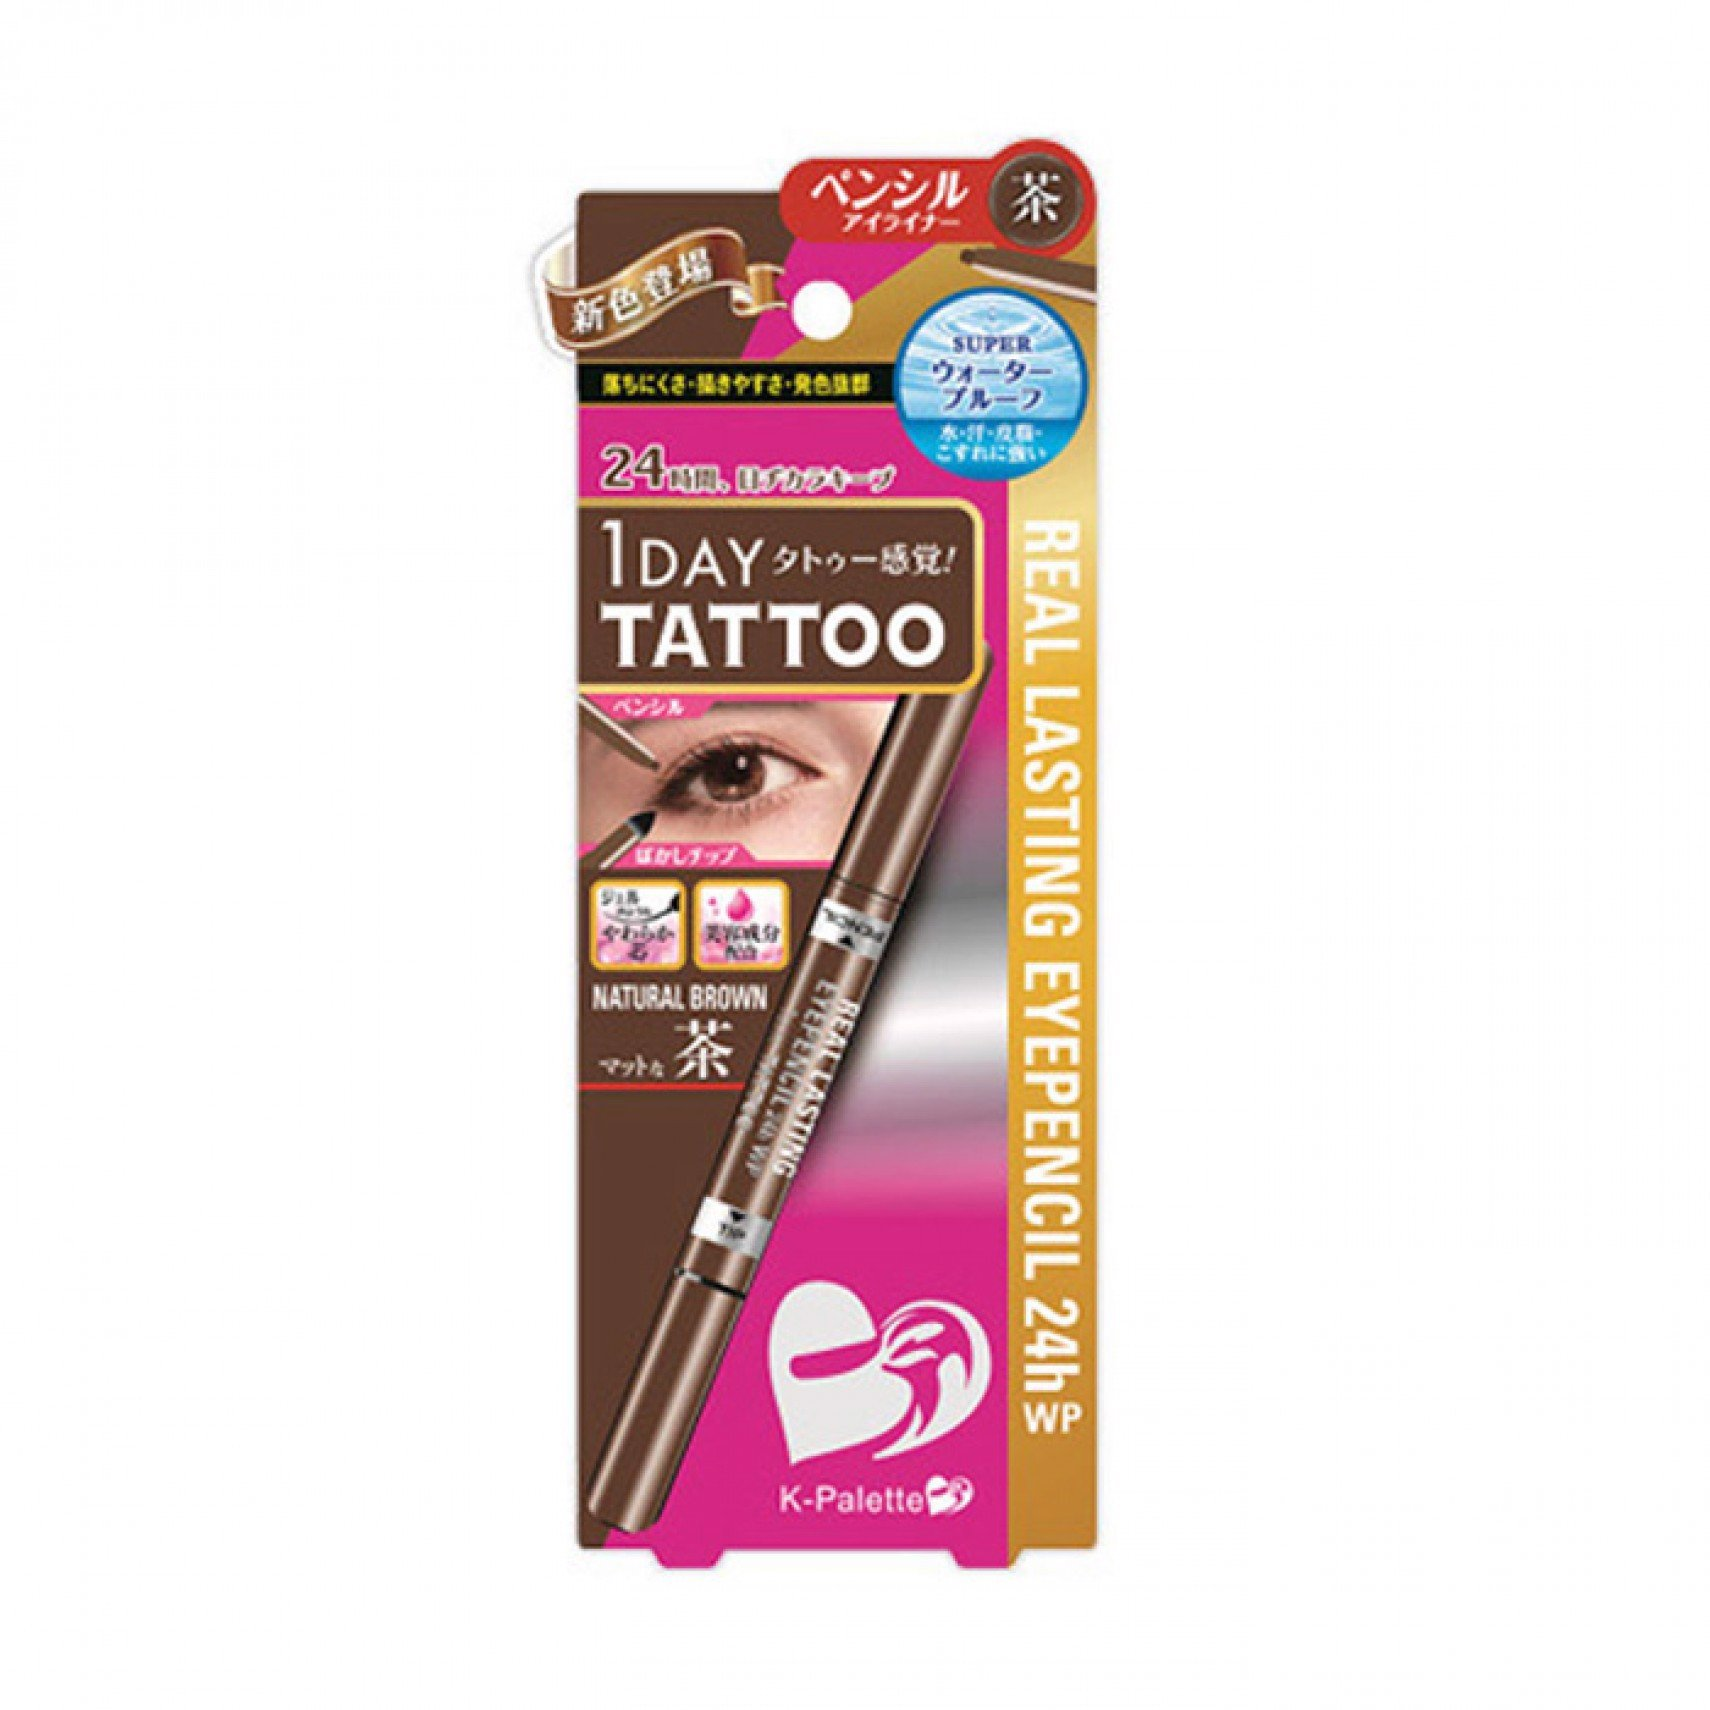 Chì kẻ mắt 1 Day Tattoo K-Palette Natural Brown NB001